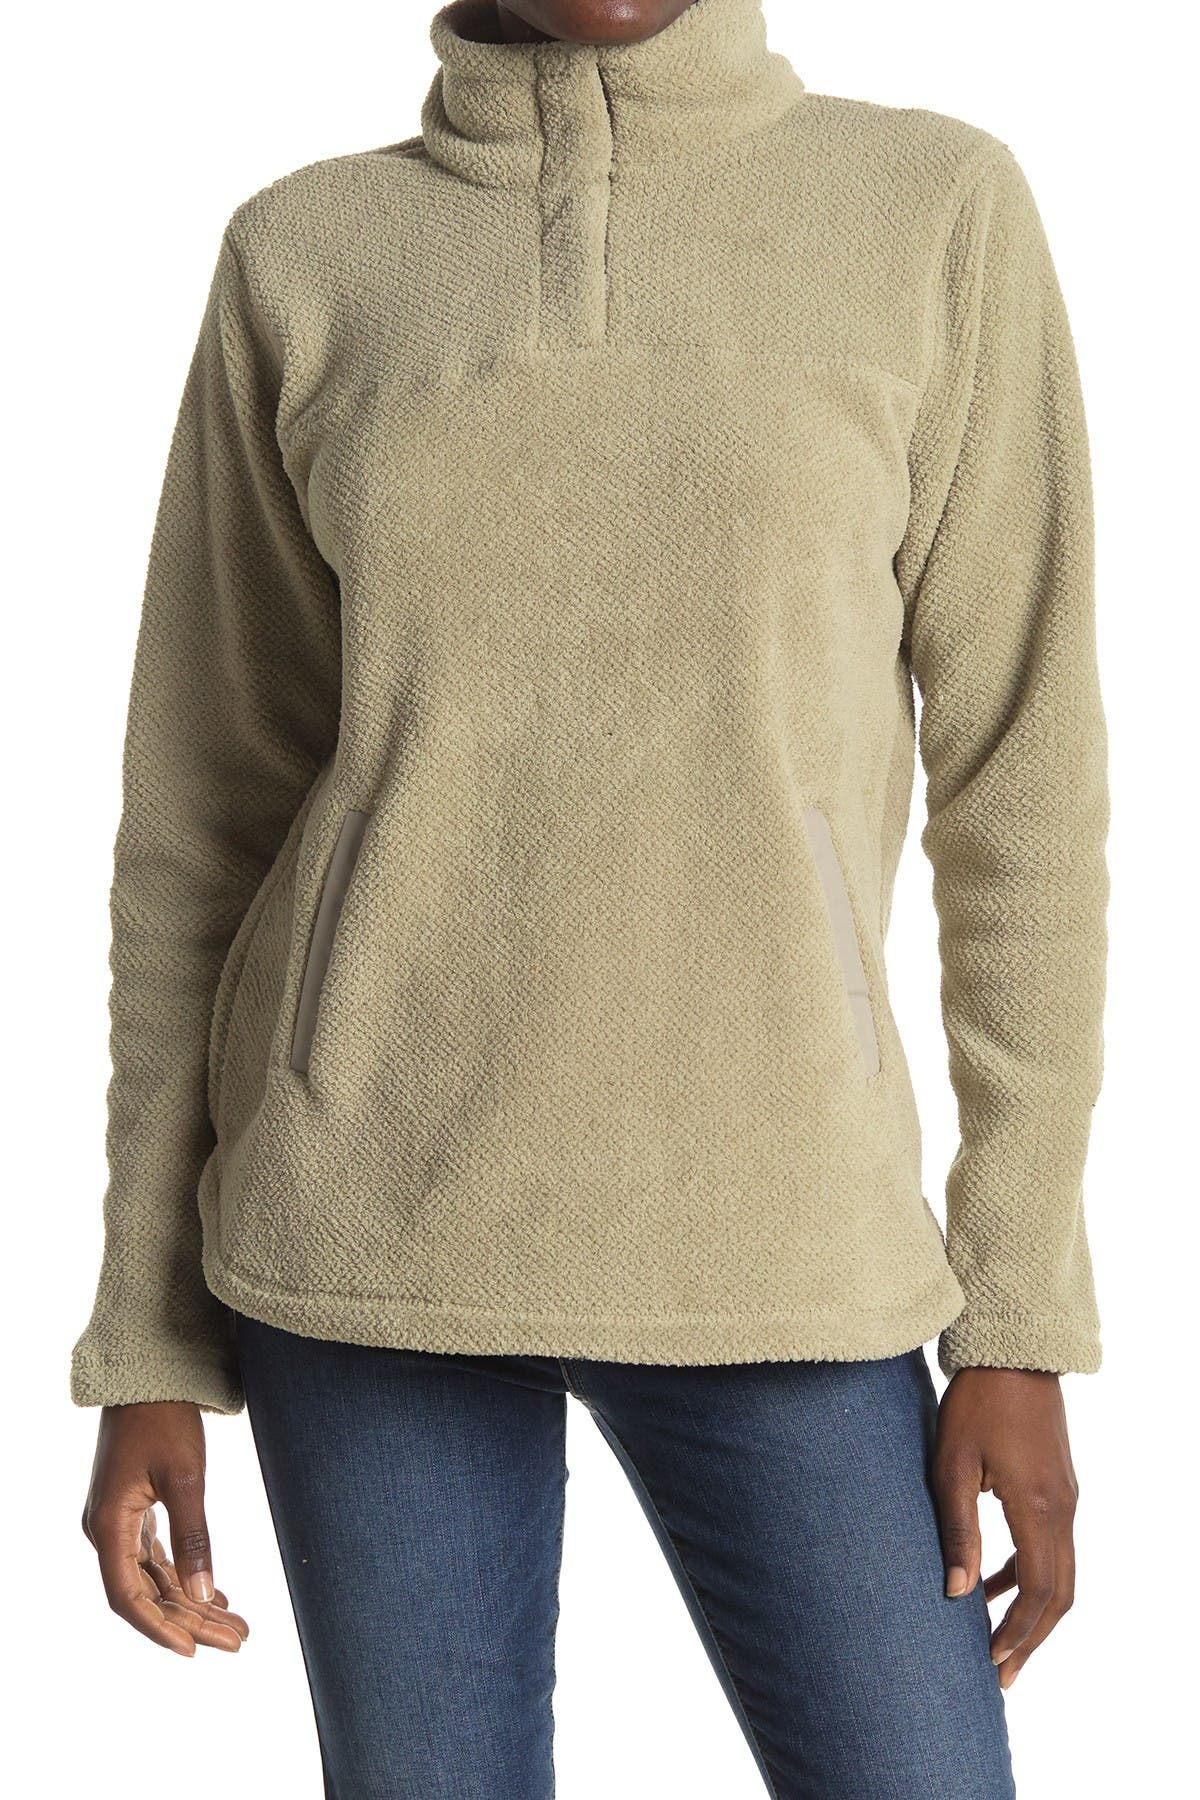 Image of THREAD AND SUPPLY Roadtrip Pullover